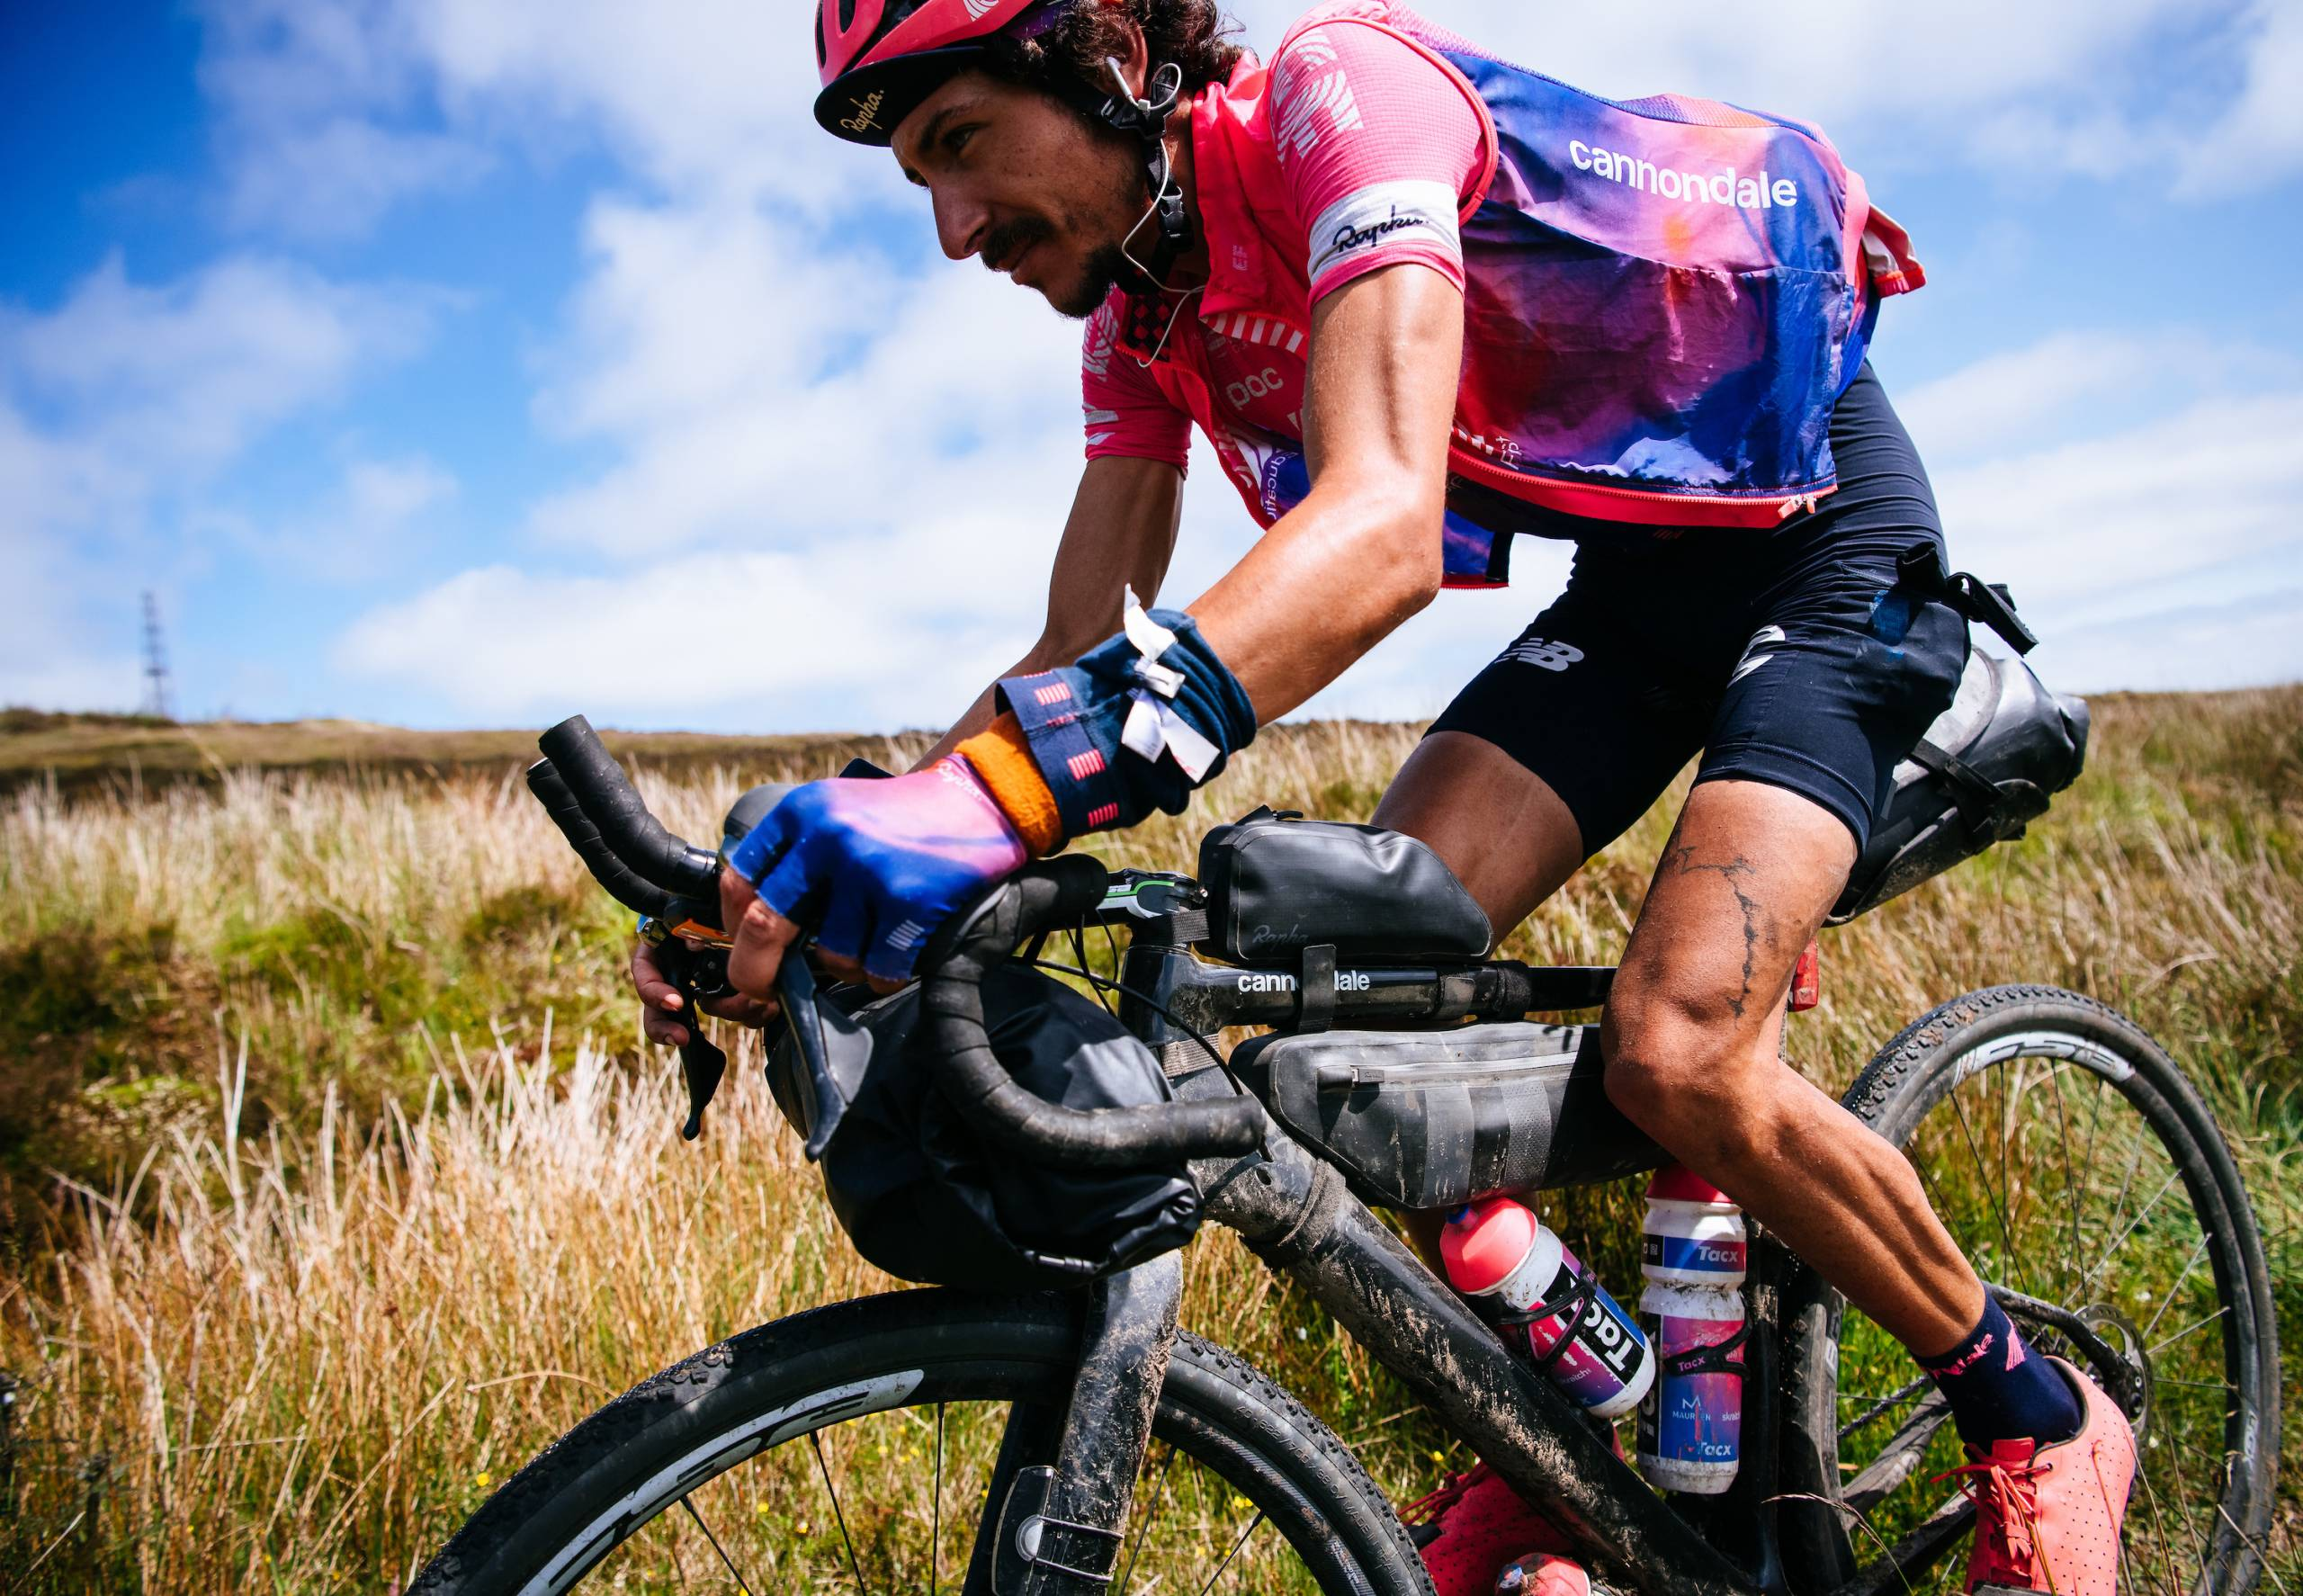 Lachlan Morton cycling in hot pink jersey, helmet with lots of gear strapped to his road bike